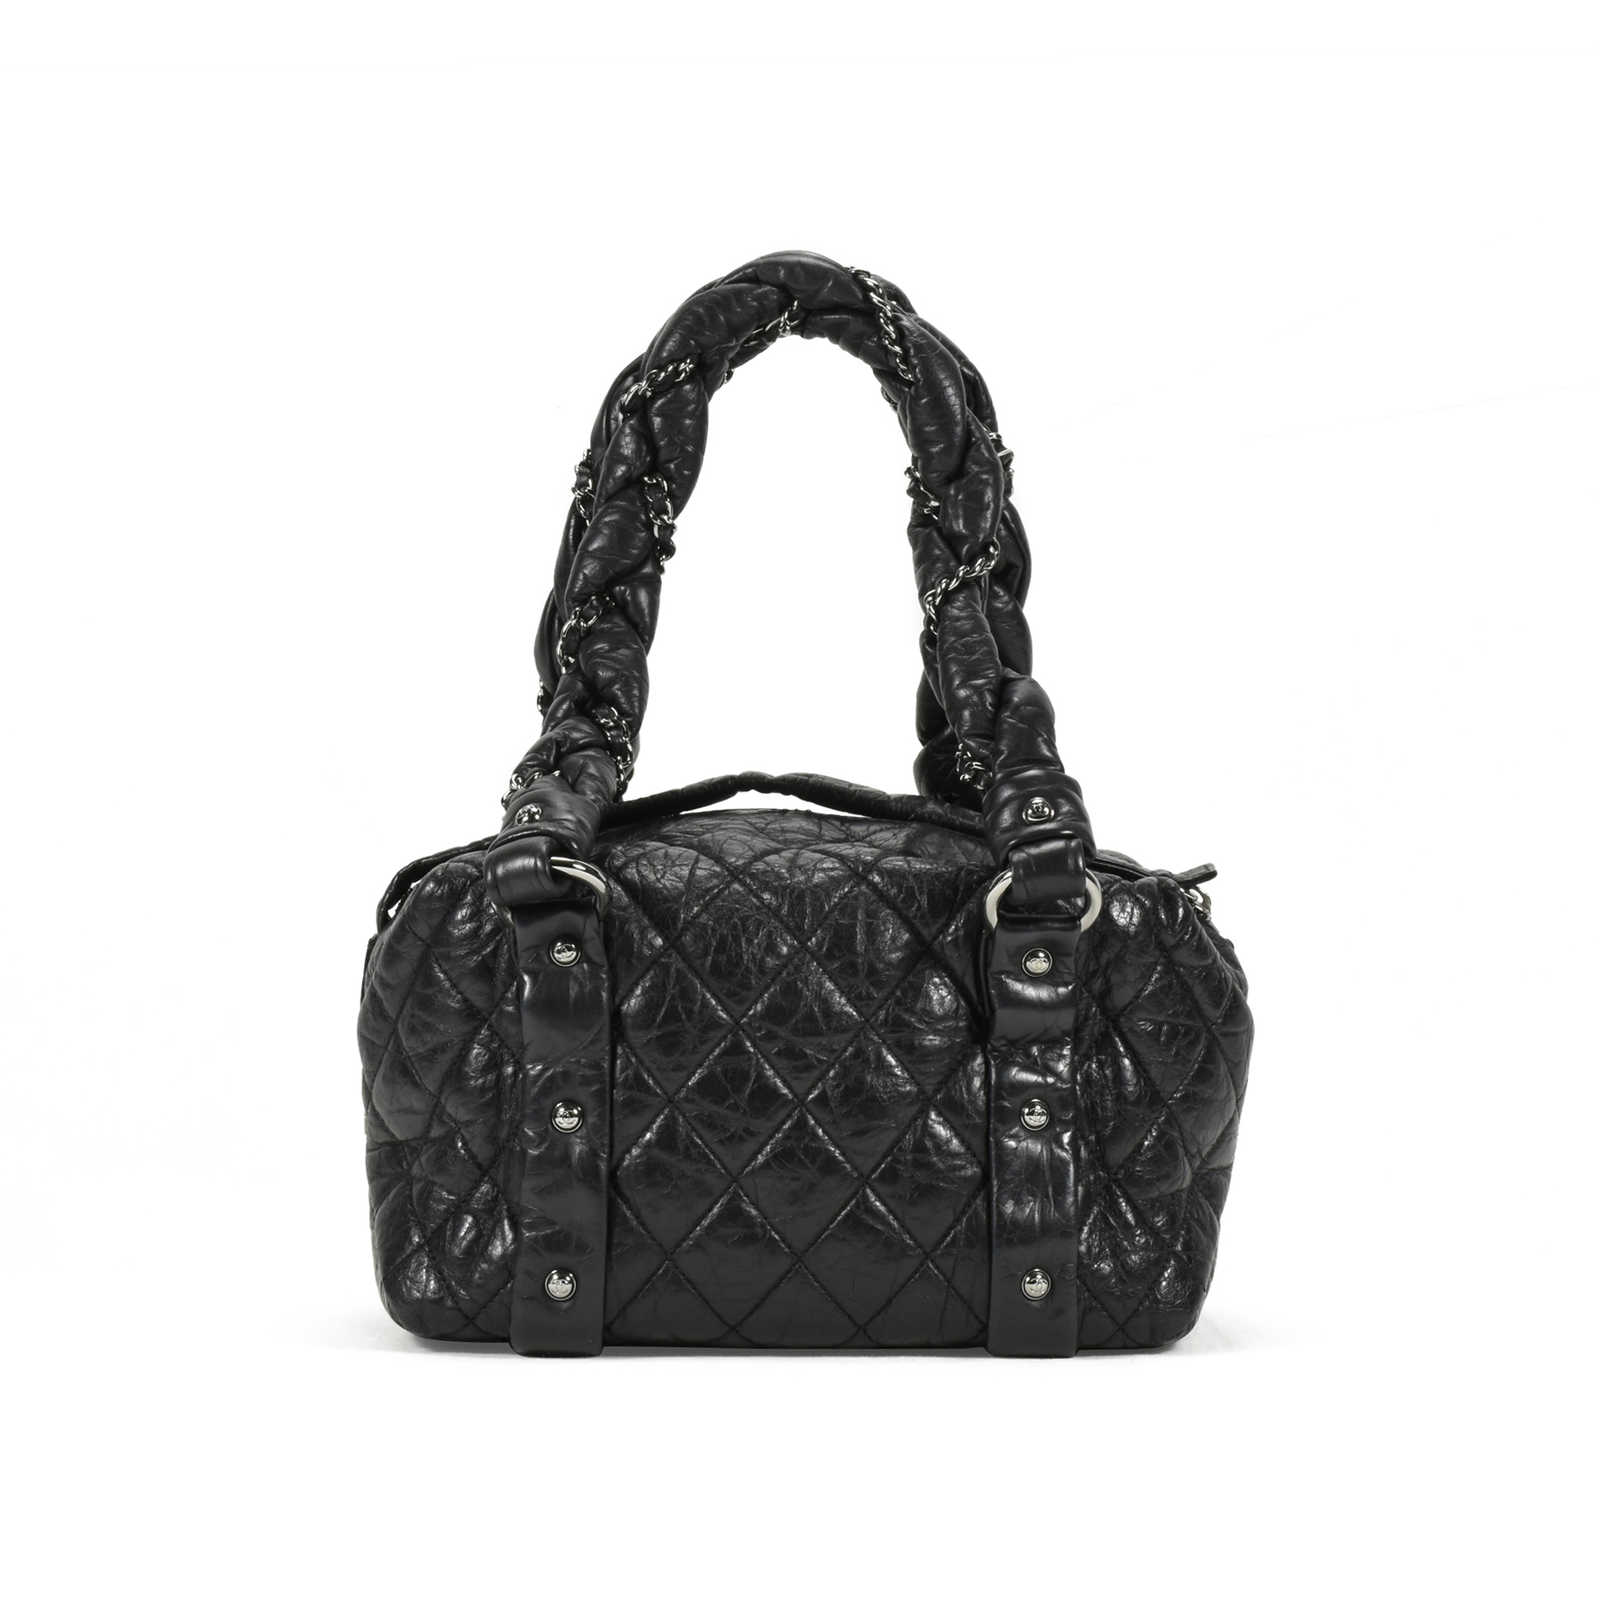 7587a22056ae94 ... Authentic Second Hand Chanel Lady Braid Small Tote Bag (PSS-200-00898)  ...